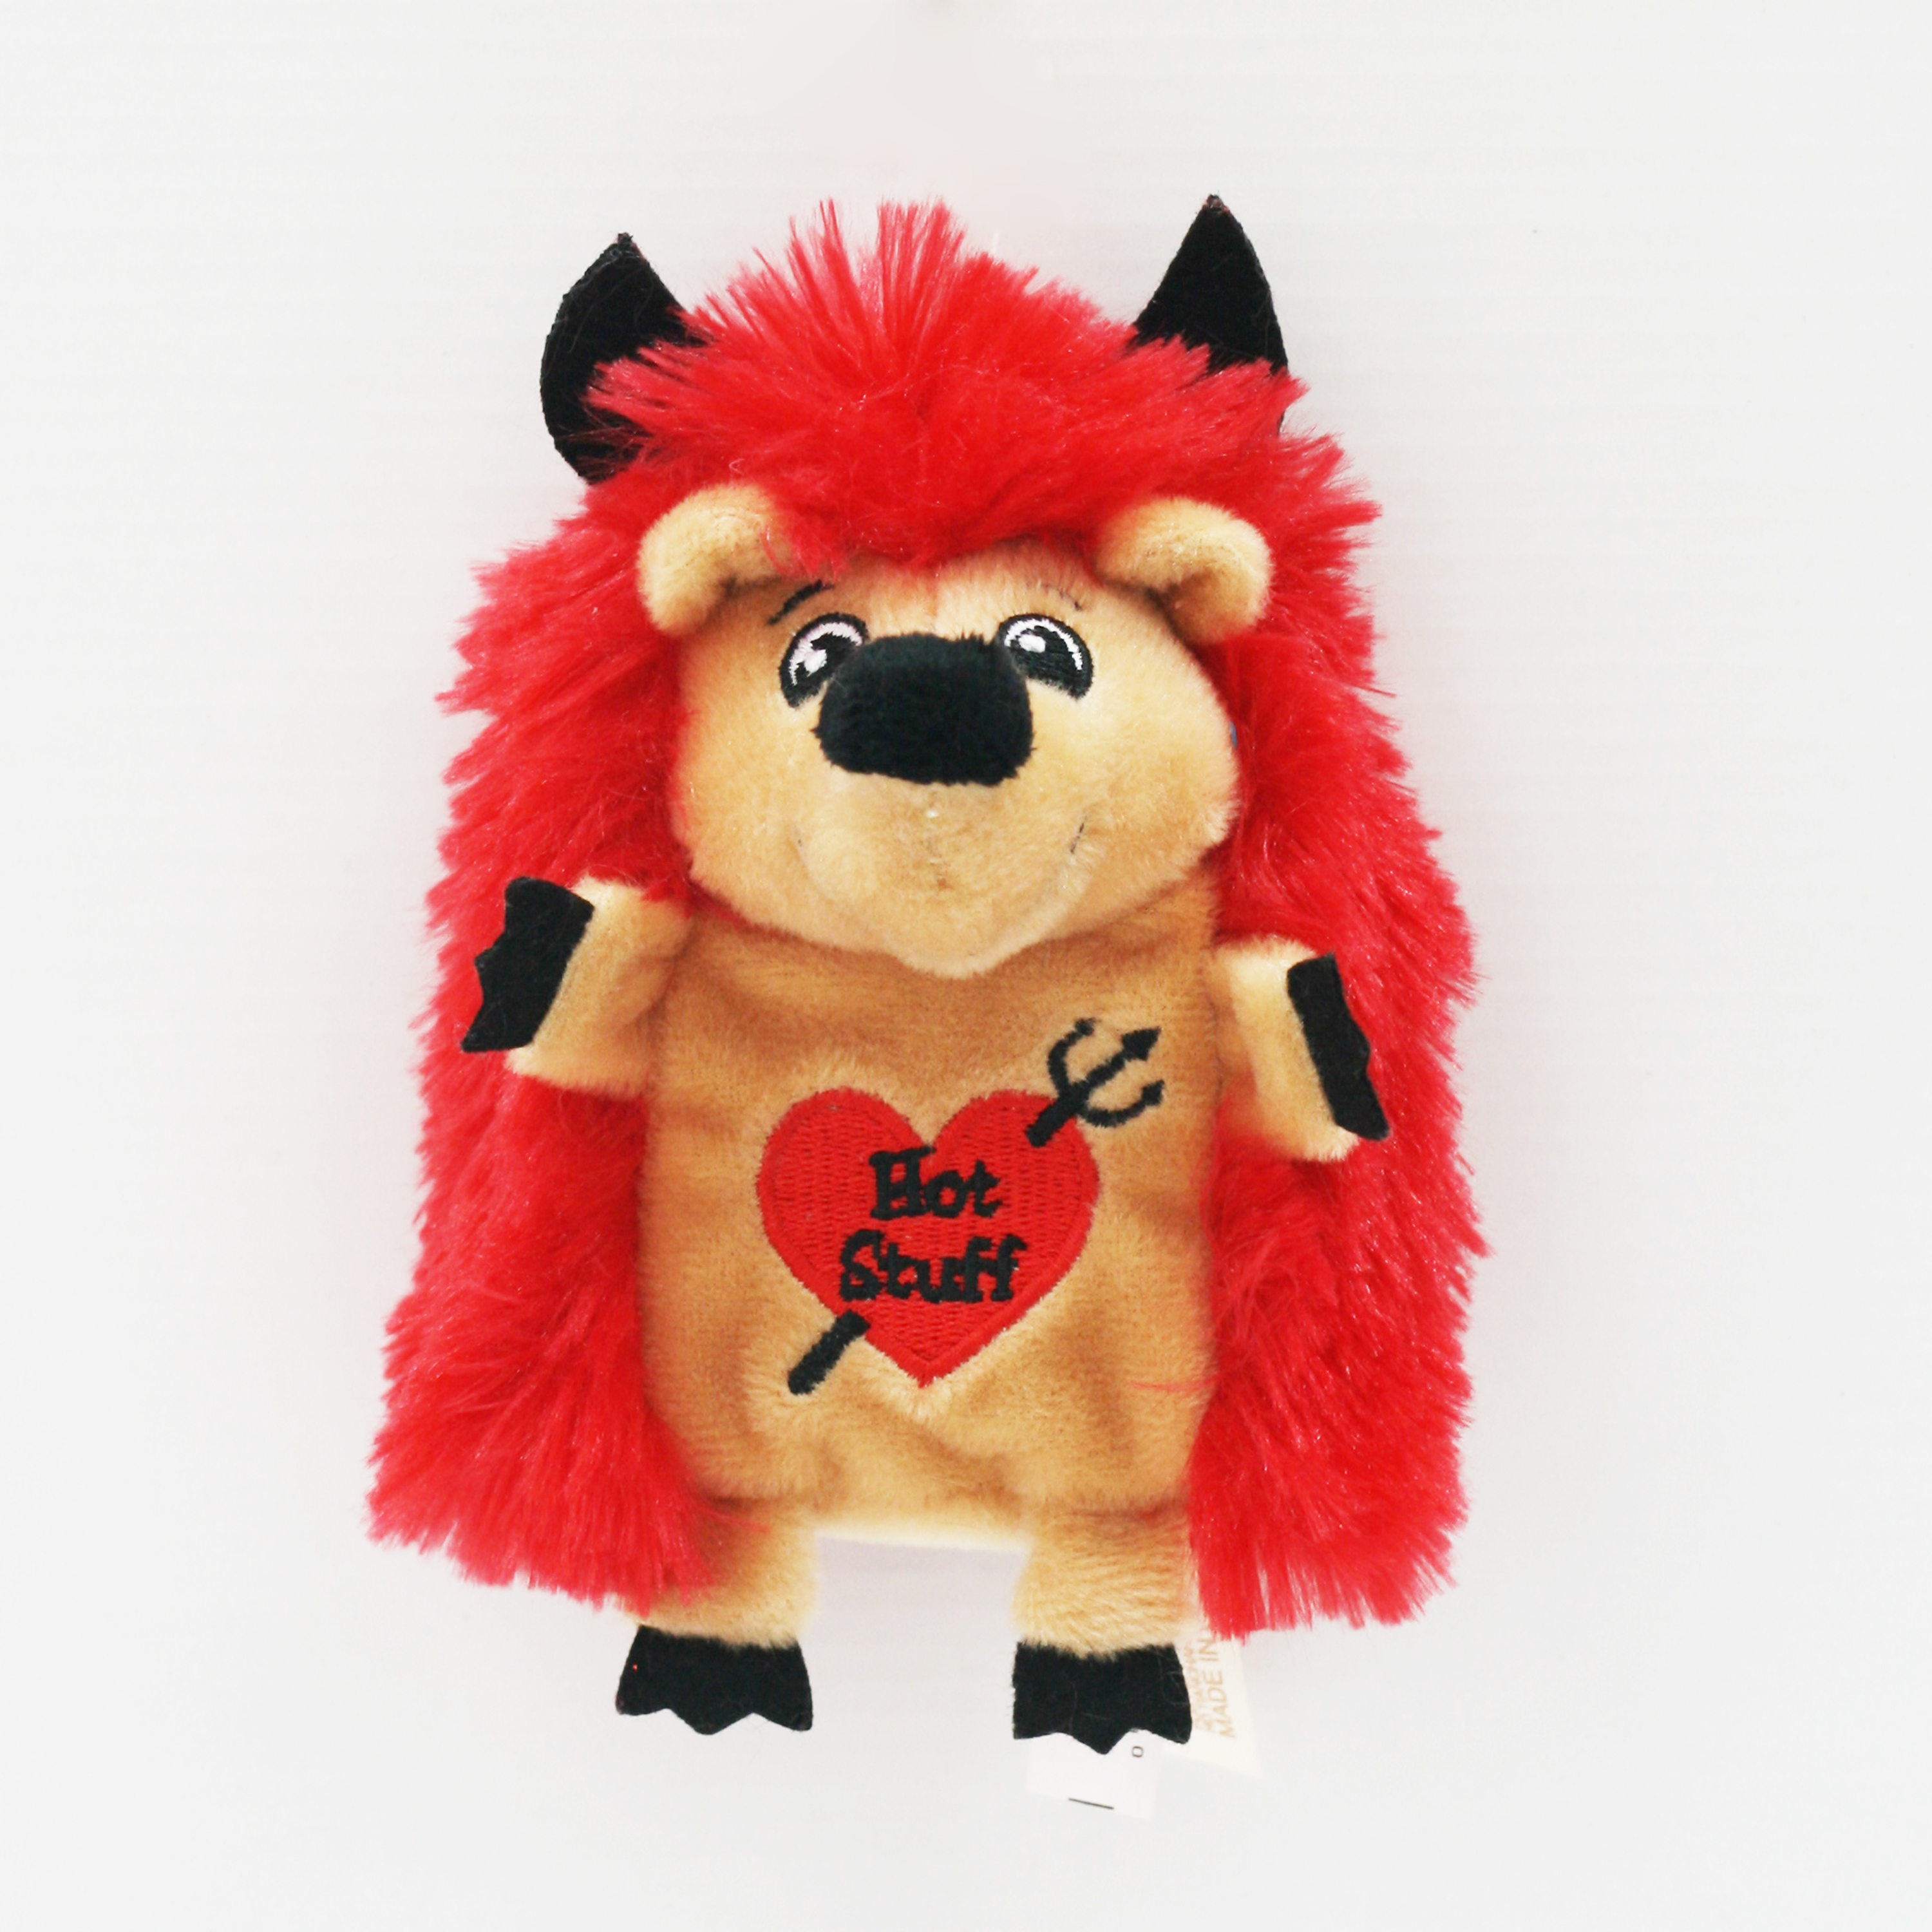 Valentine's Stuffed Dog Toys - Red Hedgehog